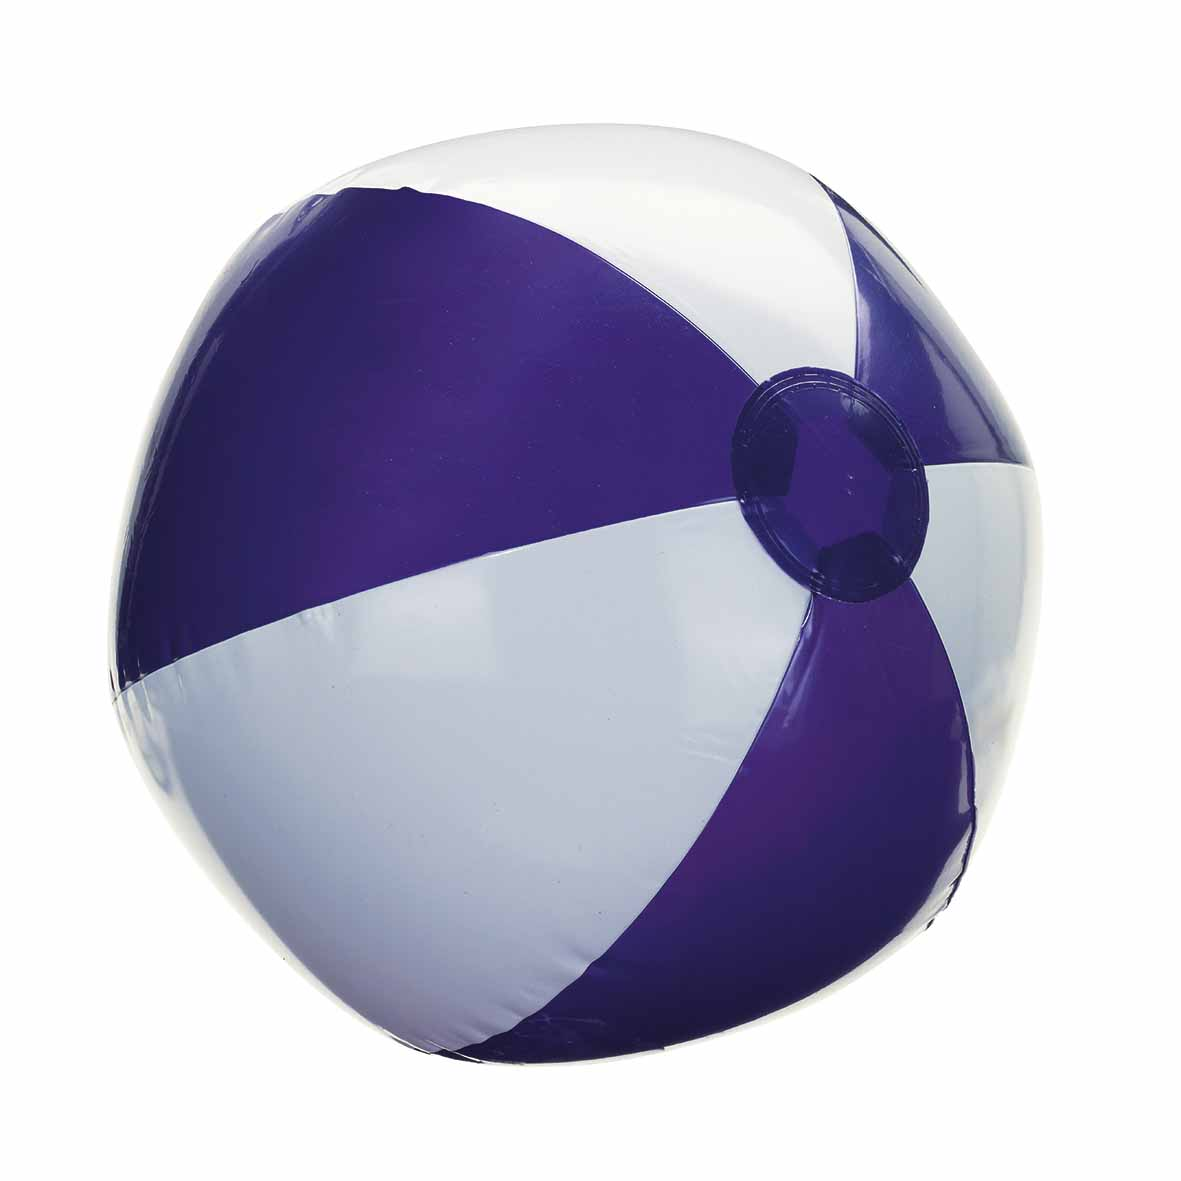 Inflatable beach ball - Purple bb-10 pu